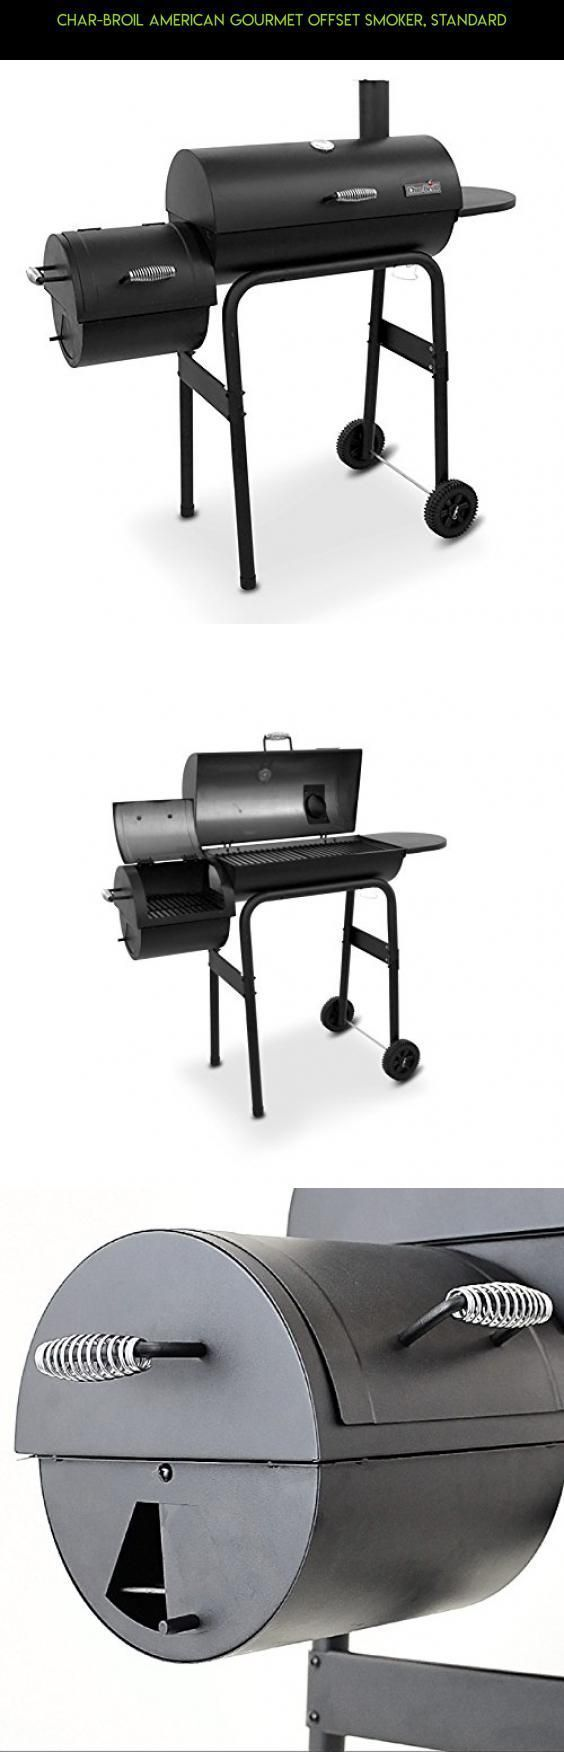 Char-Broil American Gourmet Offset Smoker, Standard #technology #products #camera #kit #plans #shopping #parts #tech #drone #grills #charcoal #racing #fpv #bbq #gadgets